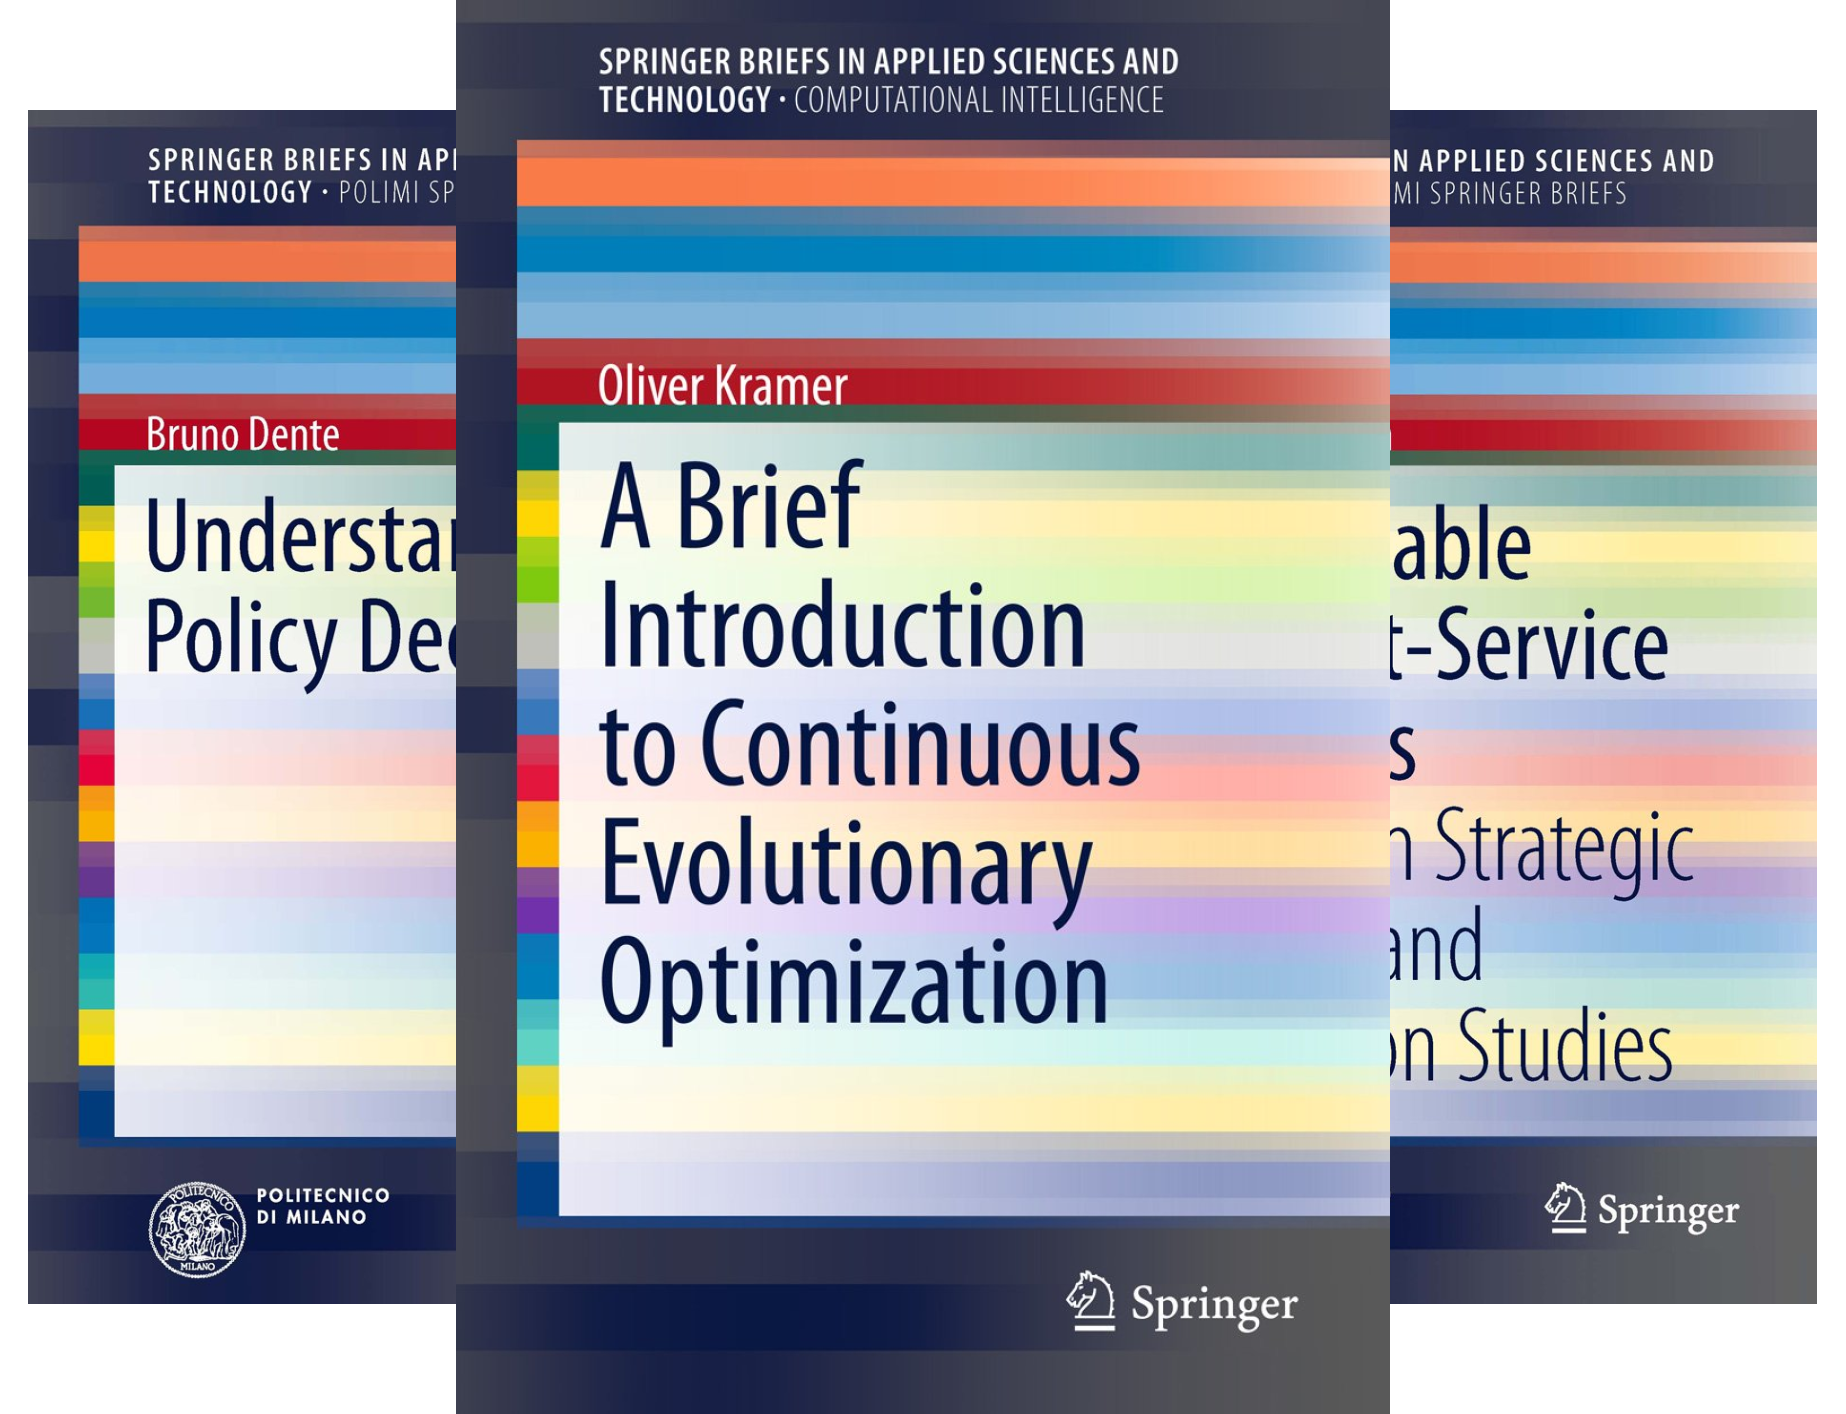 SpringerBriefs in Applied Sciences and Technology (101-150) (50 Book Series)